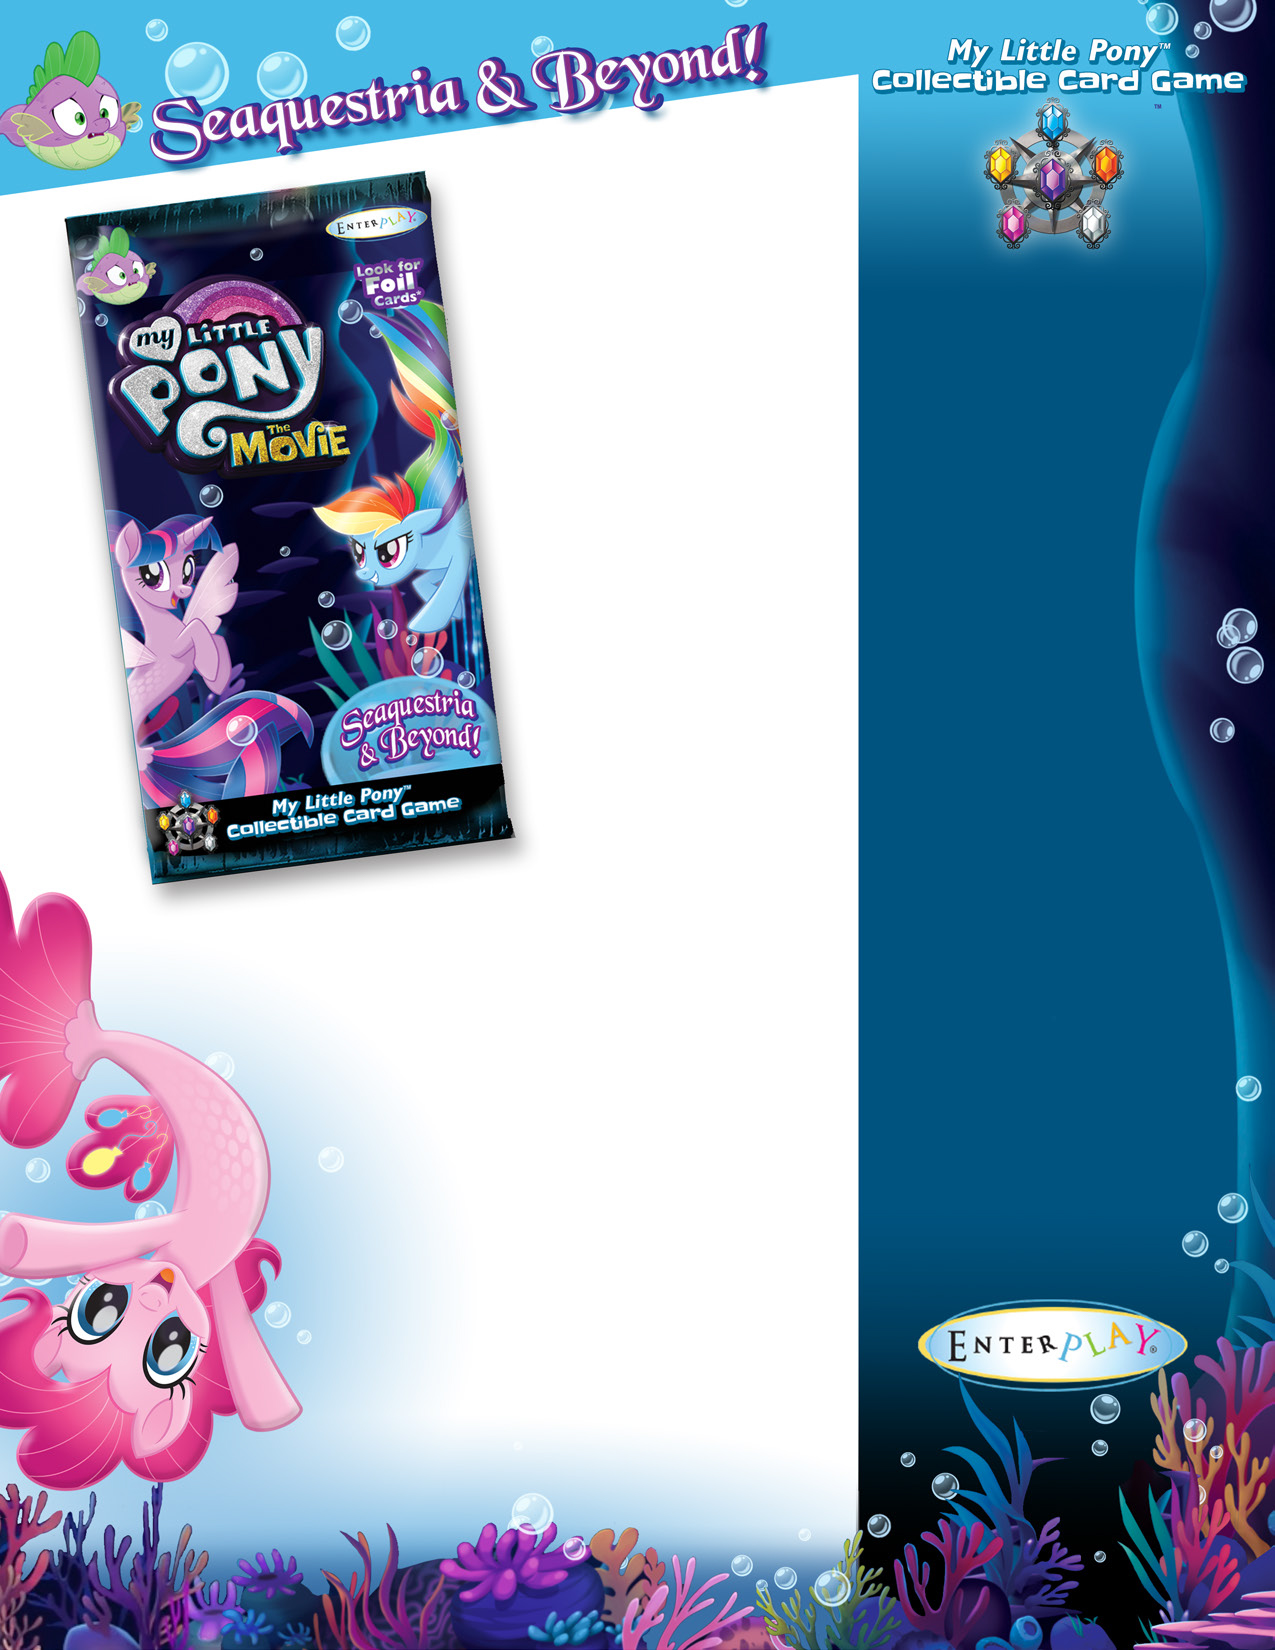 My Little Pony Ccg: Seaquestria & Beyond Booster Display (36) Game Box